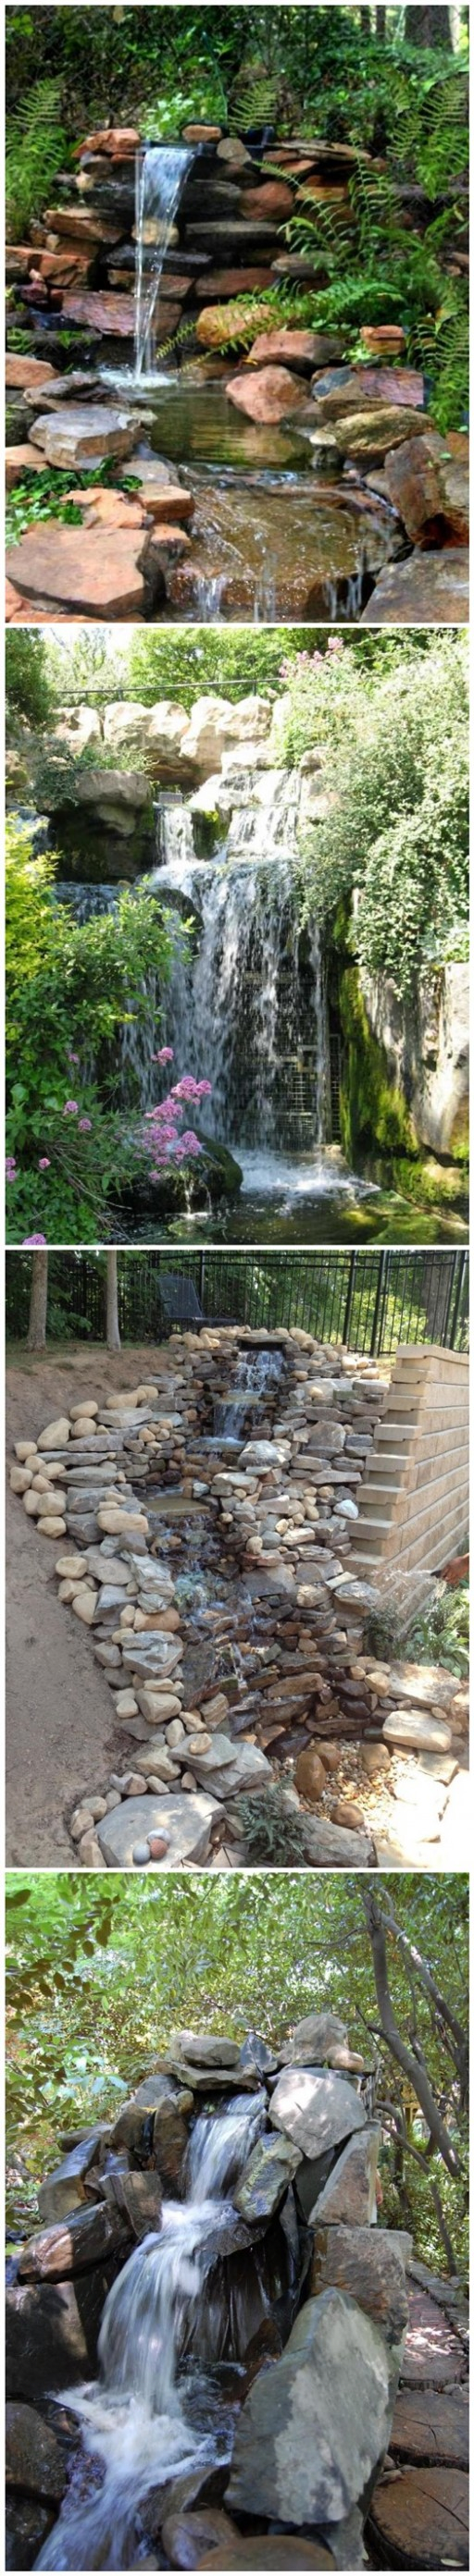 How to build a garden waterfall pond diy tag for Diy garden pond